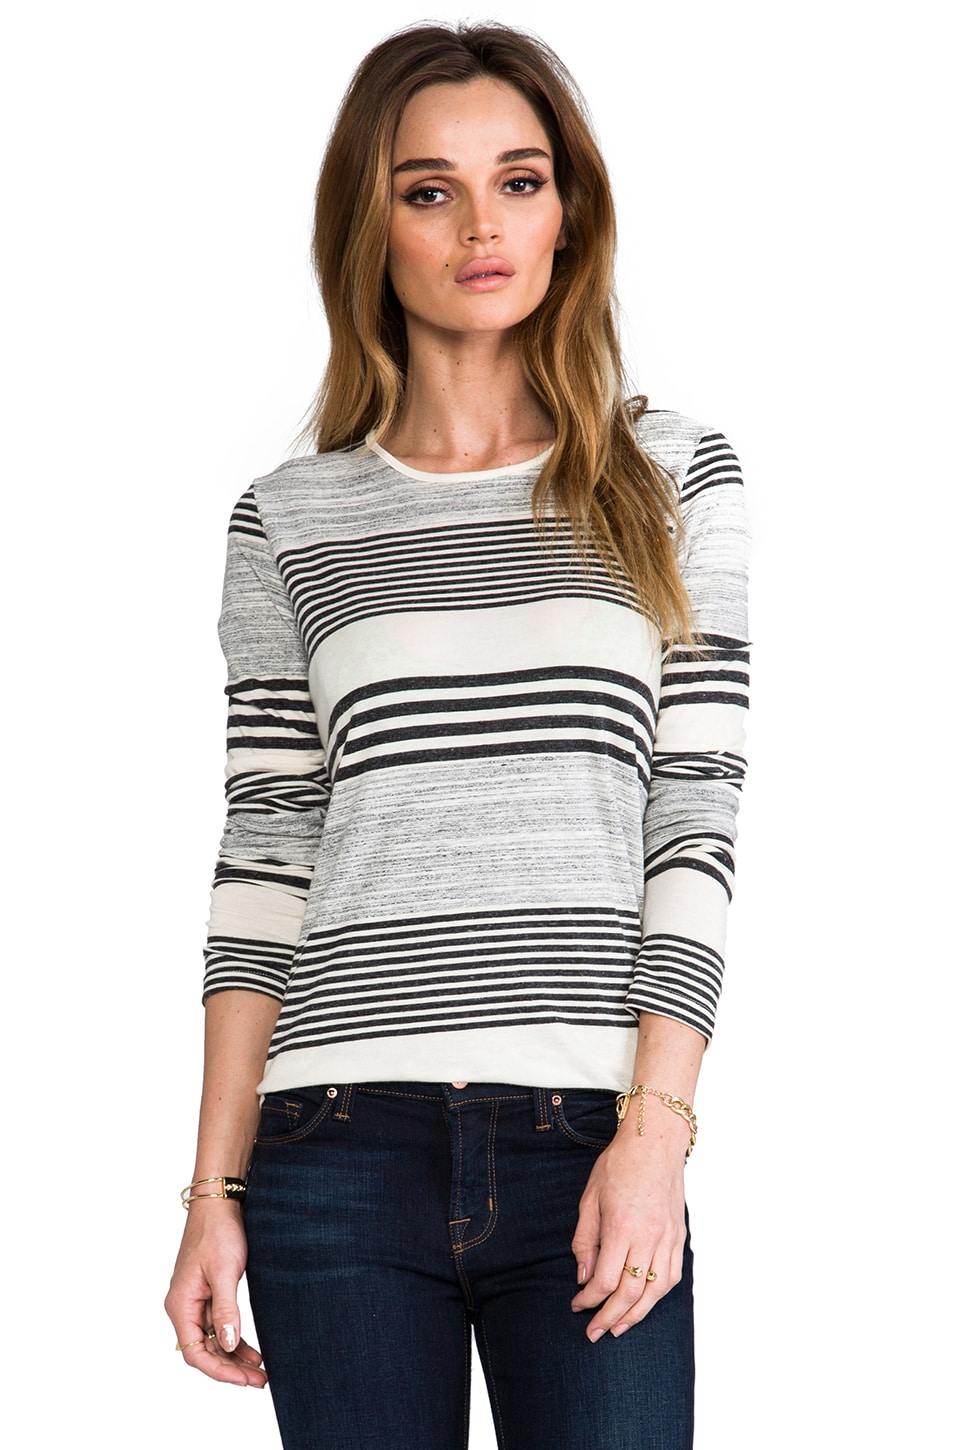 The Lady & the Sailor Long Sleeve Round Bottom Tee in Auto Stripe